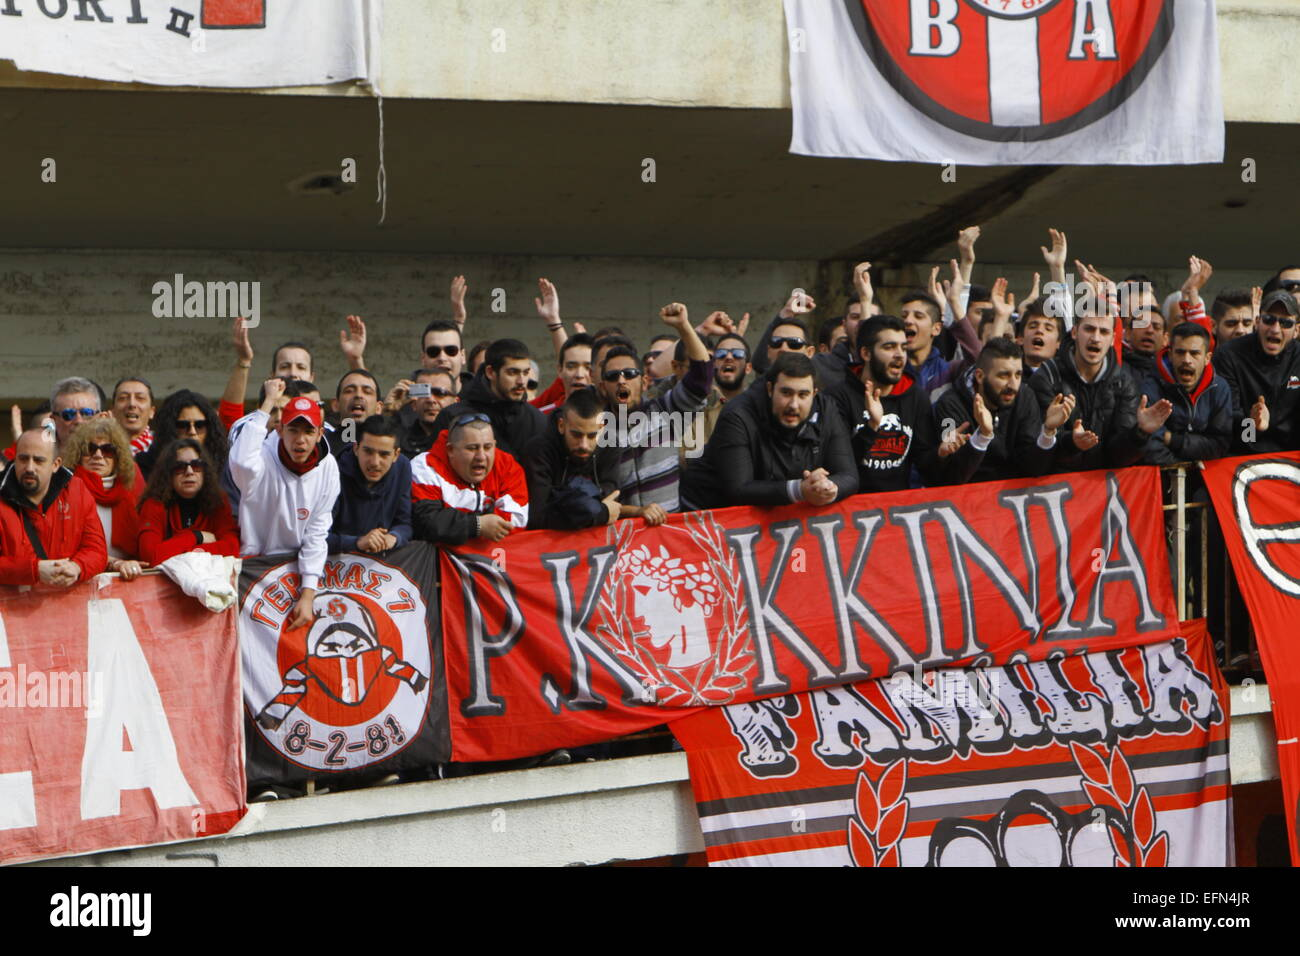 Piraeus Greece 7th Feb 2015 Hundreds Of Fans And Ultras Of Olympiacos Have Come To The Memorial Service Hundreds Of Fans And Official Came To The Karaiskakis Stadium To Remember The Victims